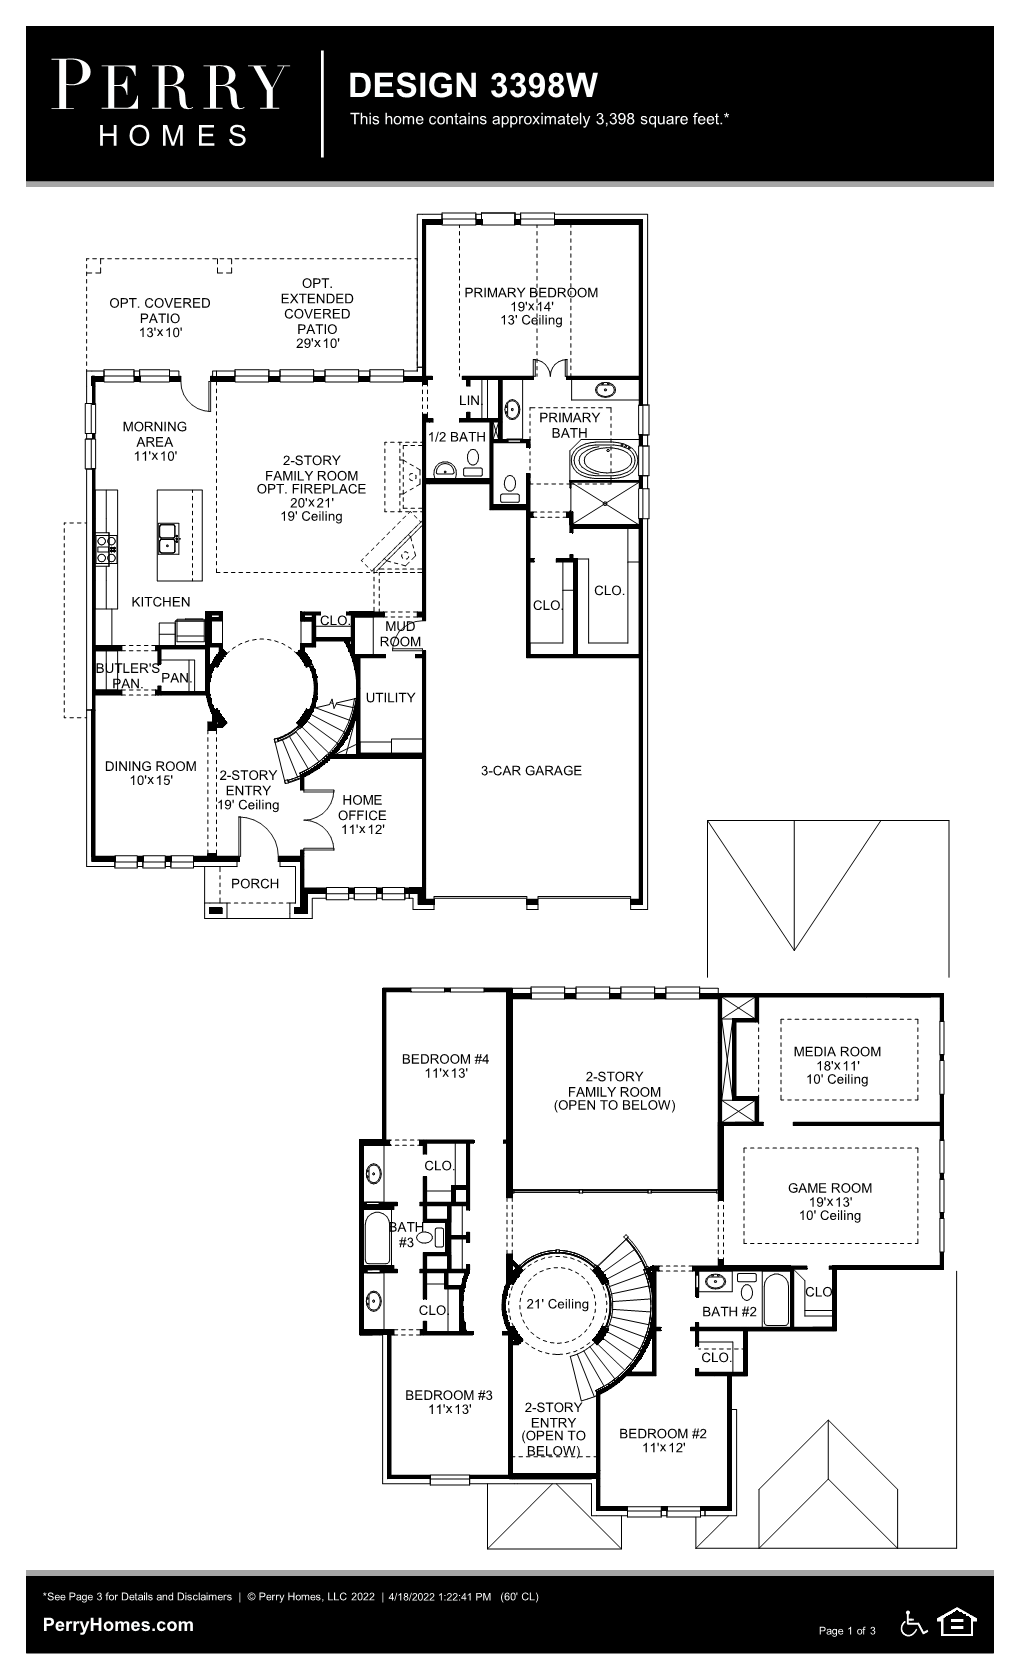 Floor Plan for 3398W